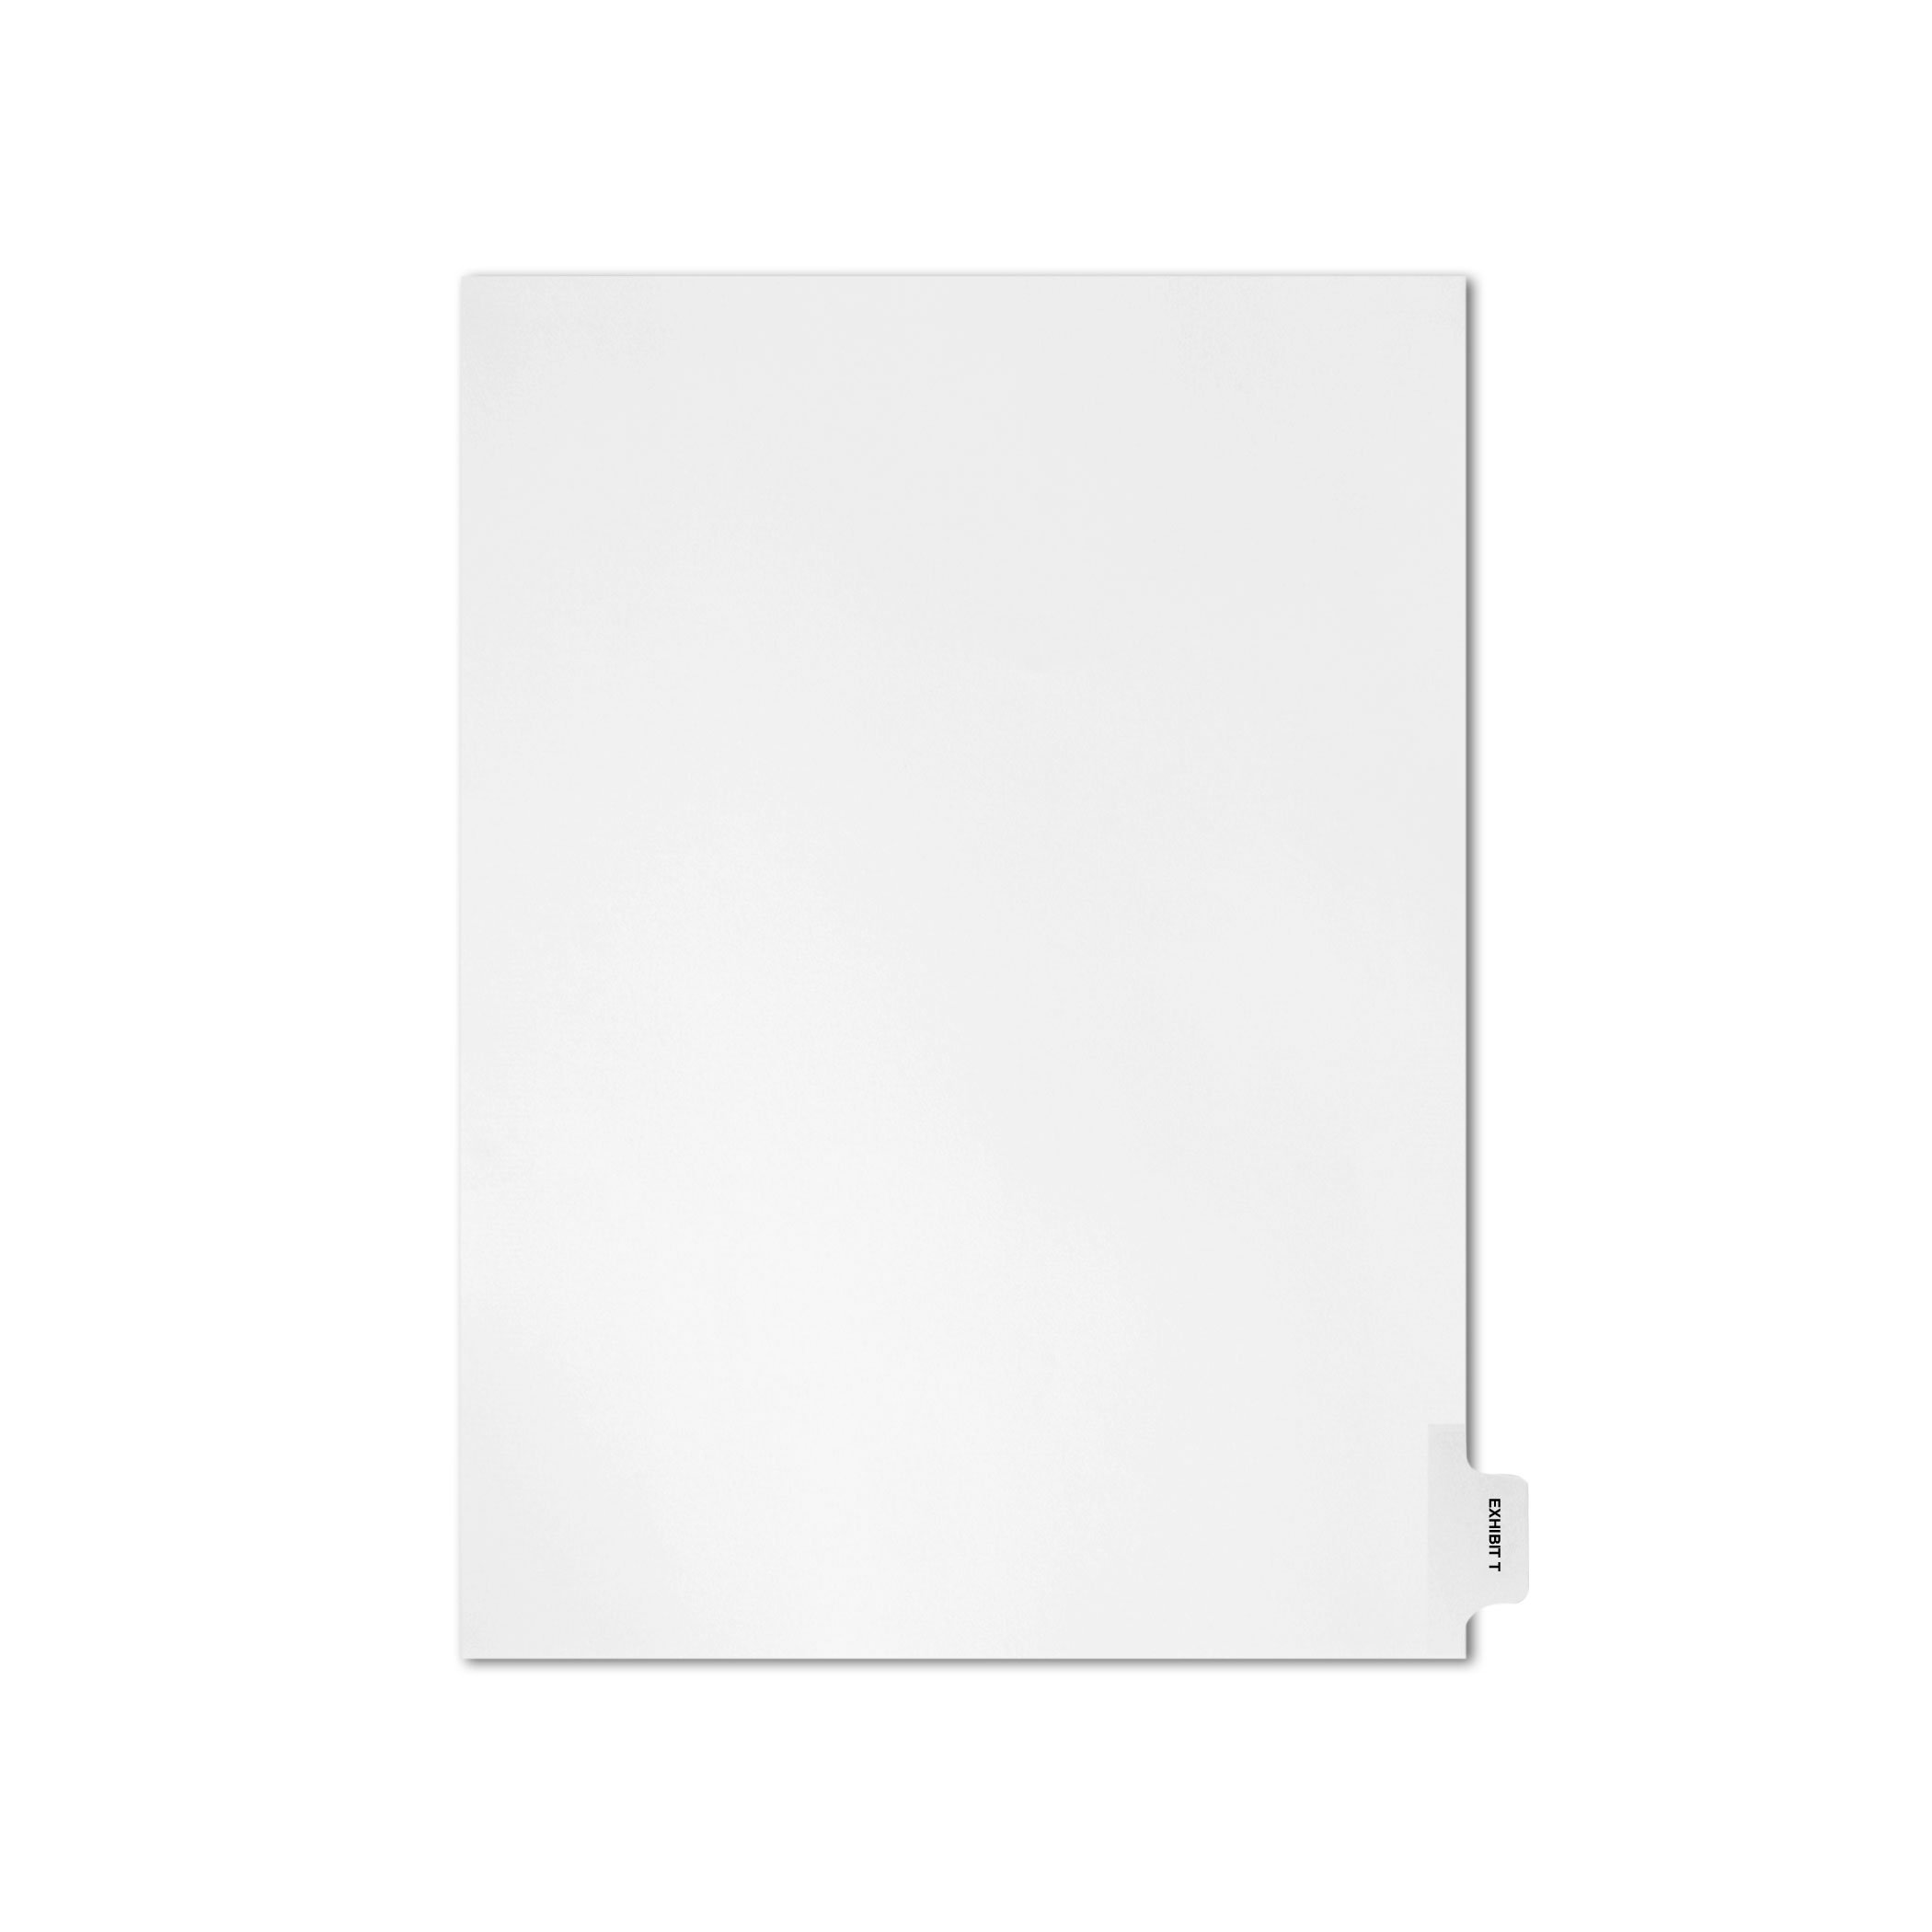 AMZfiling Individual Legal Index Tab Dividers, Compatible with Avery- Exhibit T, Side Tabs, Letter Size, White, Position 10 (25 Sheets/pkg)